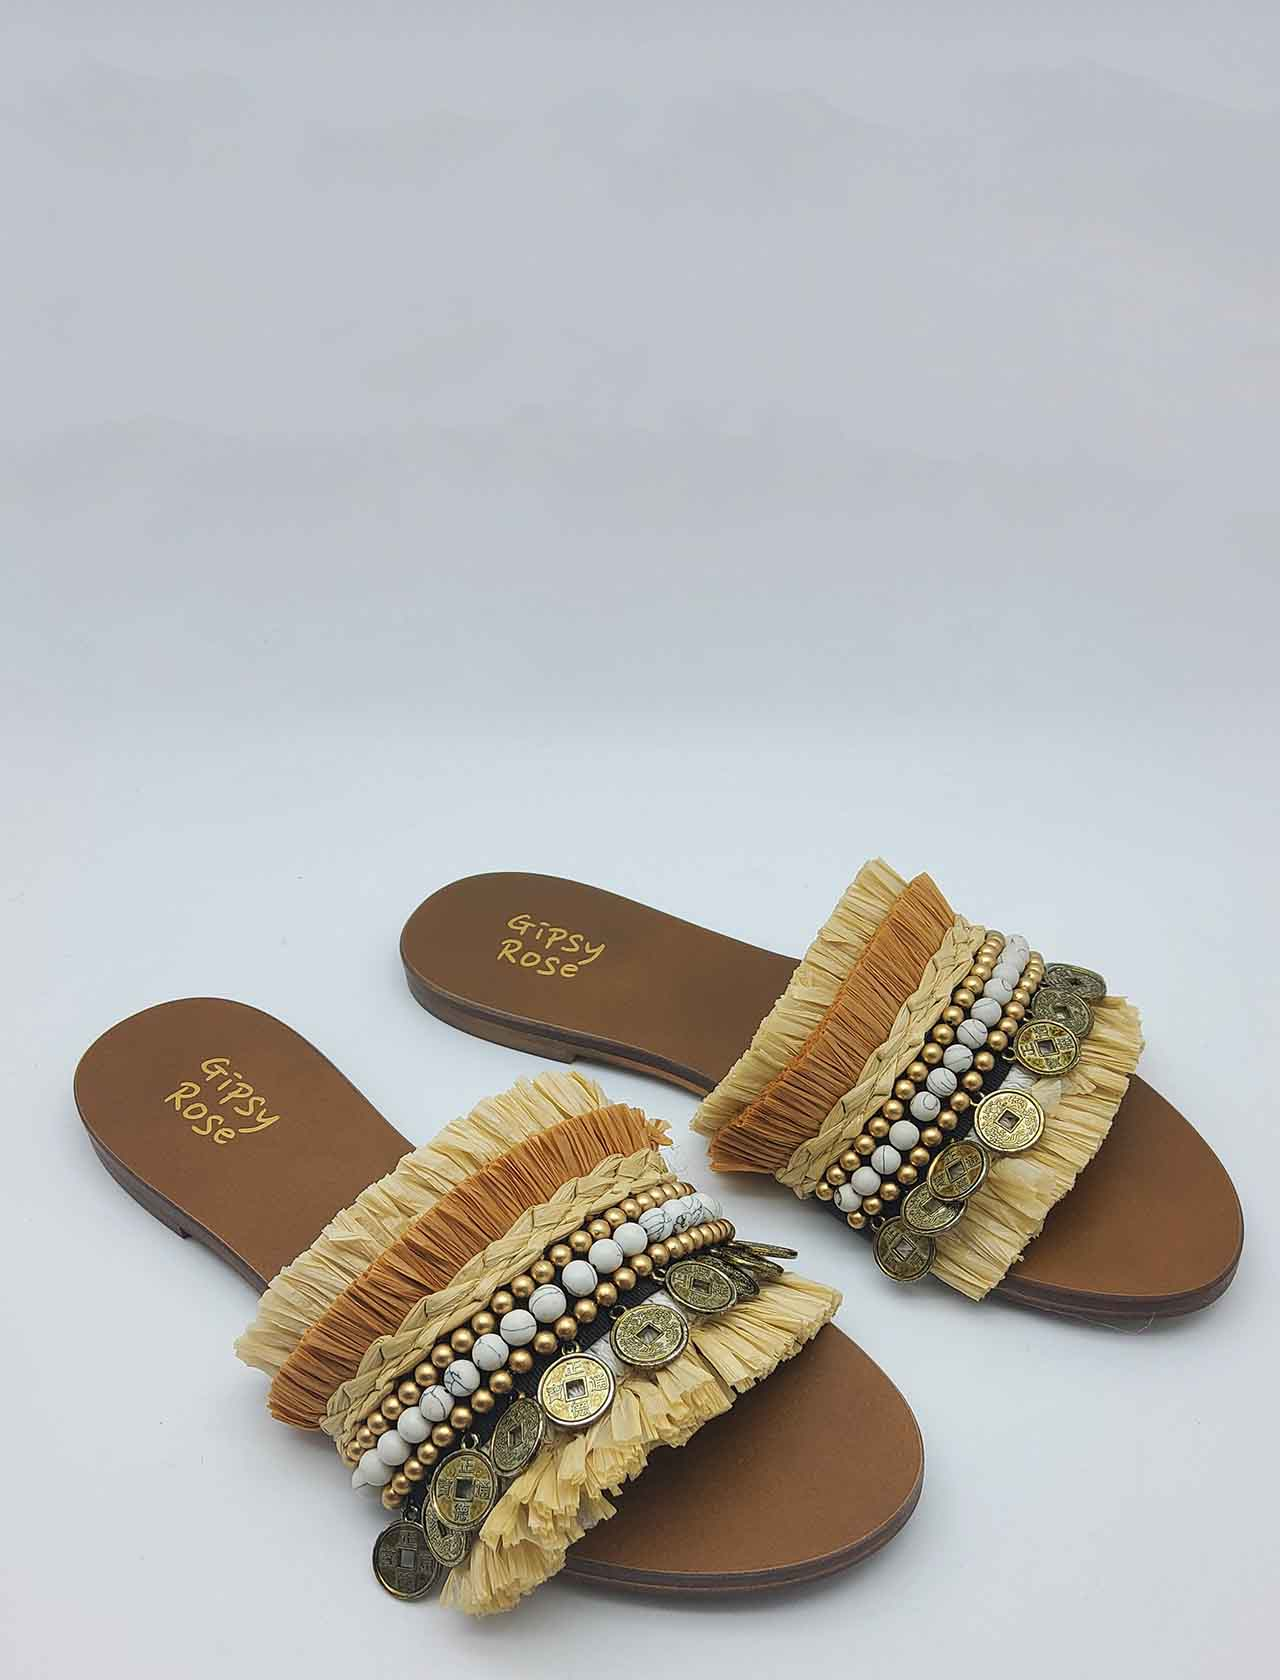 Women's Shoes Flat Sandals in Natural Multicolor Fabric with Fringes and Accessories Gipsy Rose | Flat sandals | STRIBE014